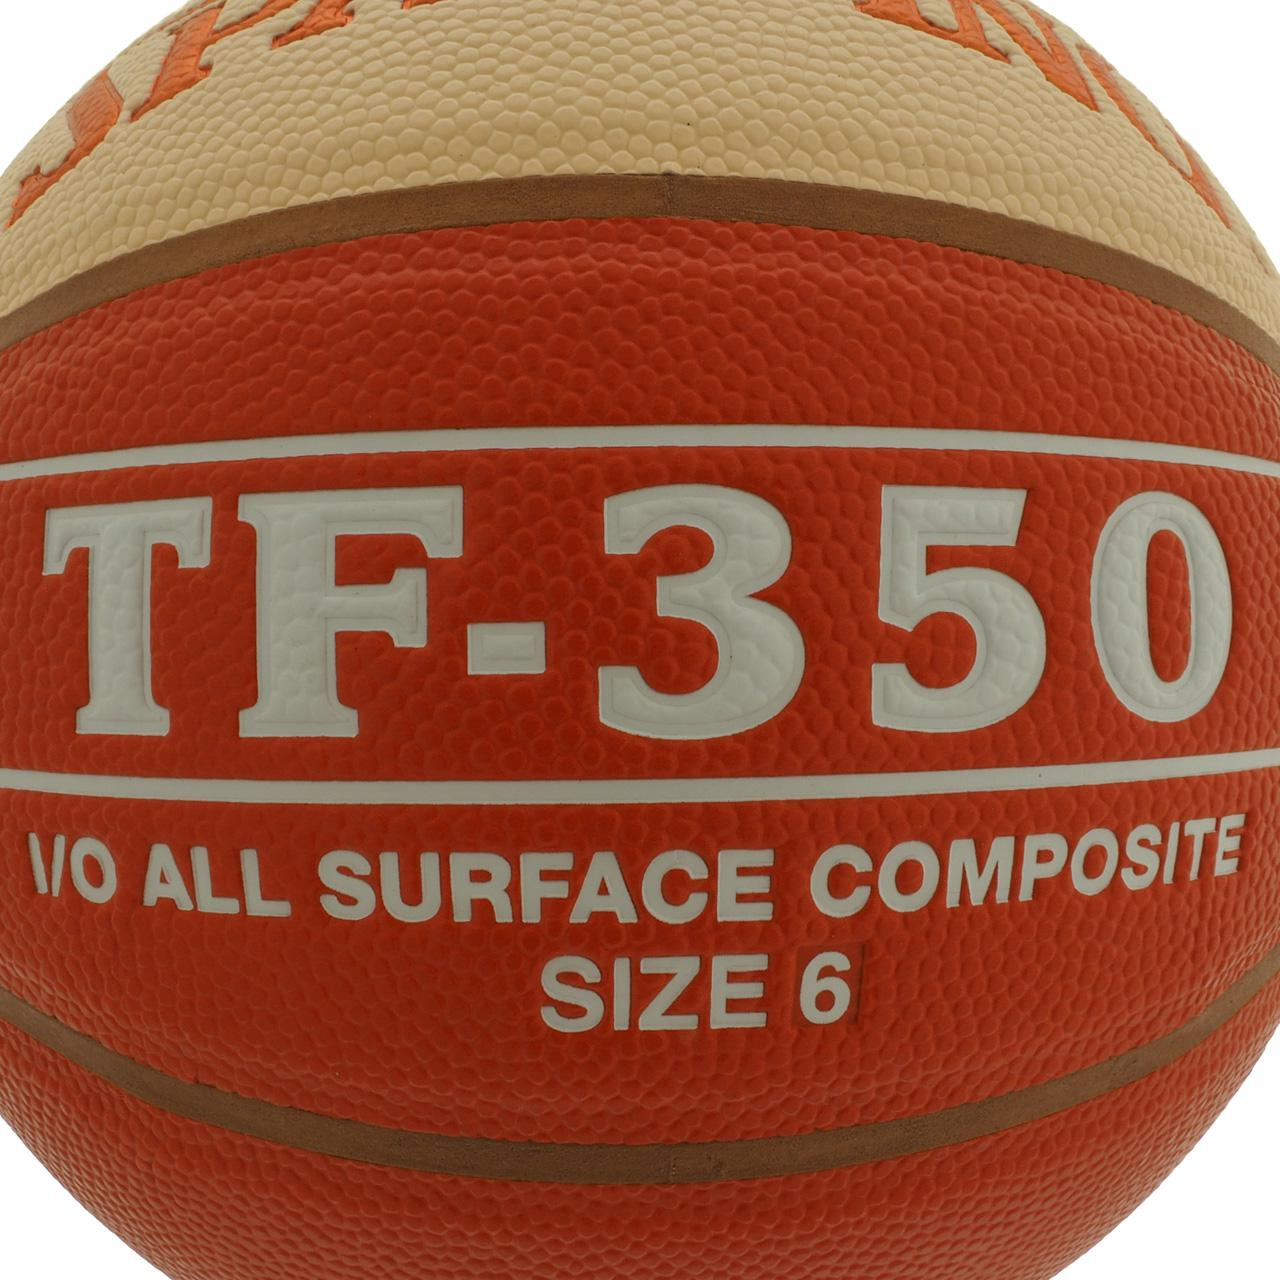 Ball-Of-Basketball-Spalding-Tf350-t6-Ball-Orange-50023-New thumbnail 2